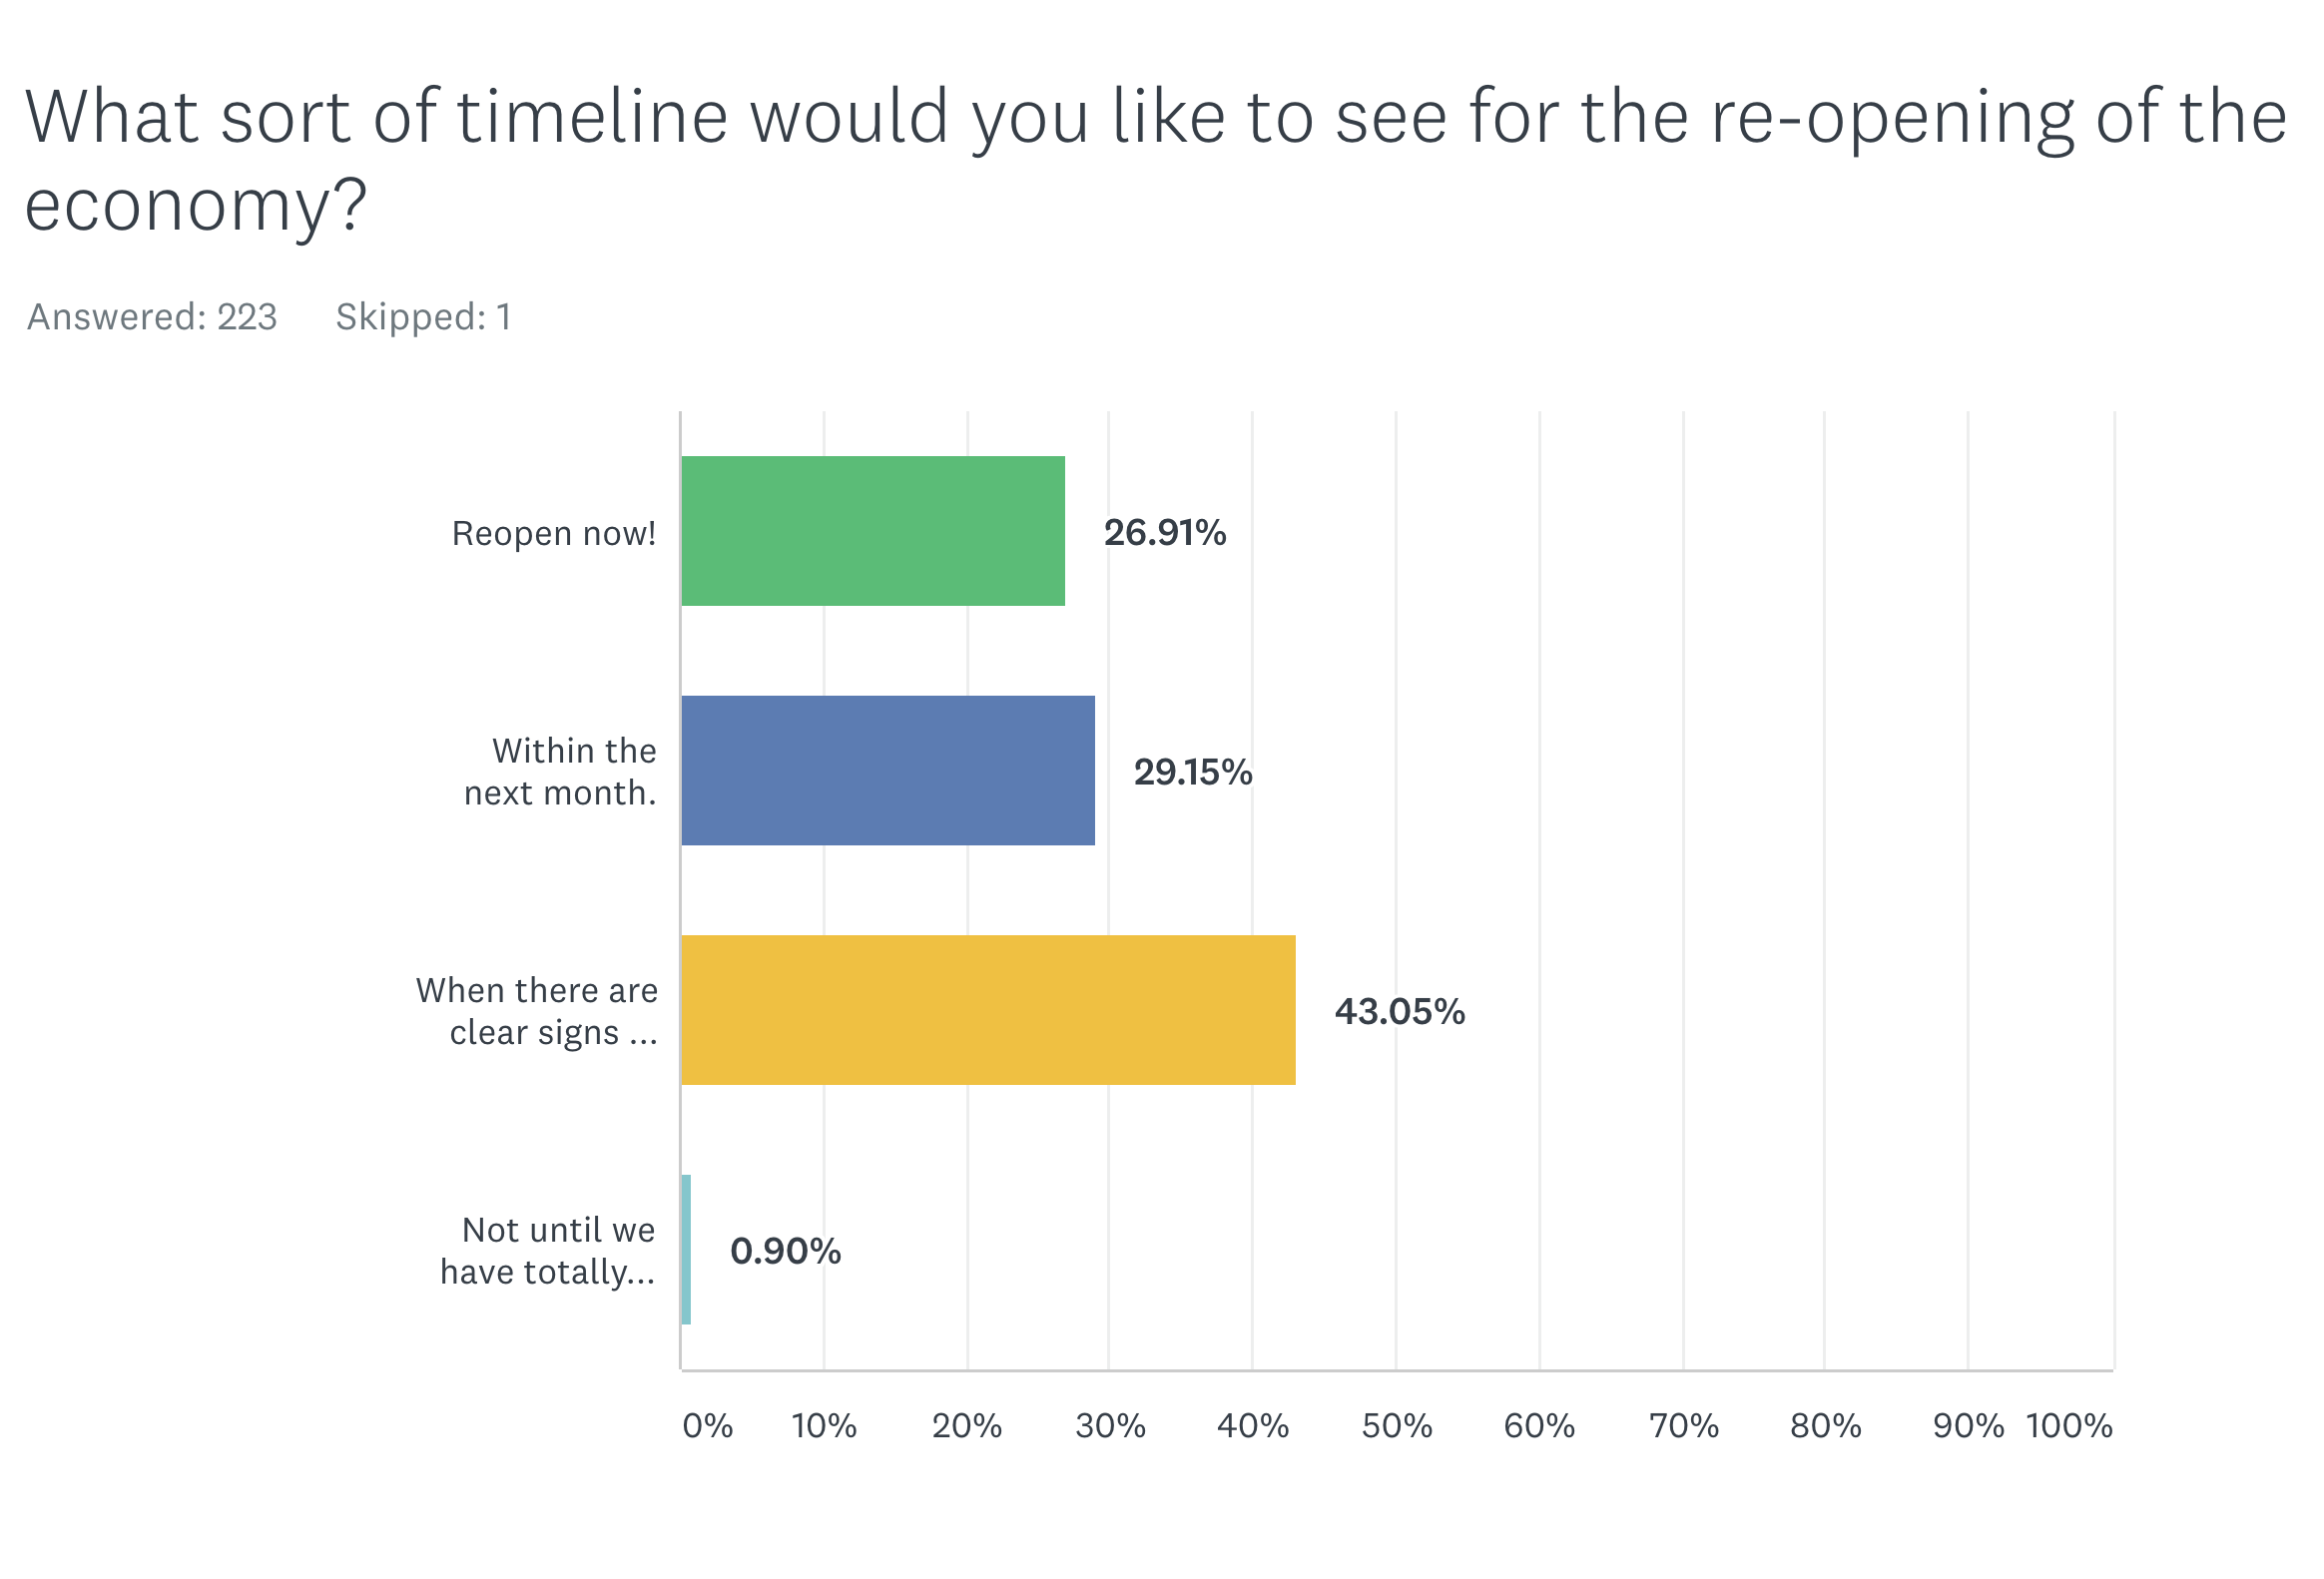 More Than Half of Jewelers Surveyed Are Ready to Open Their Stores Within a Month